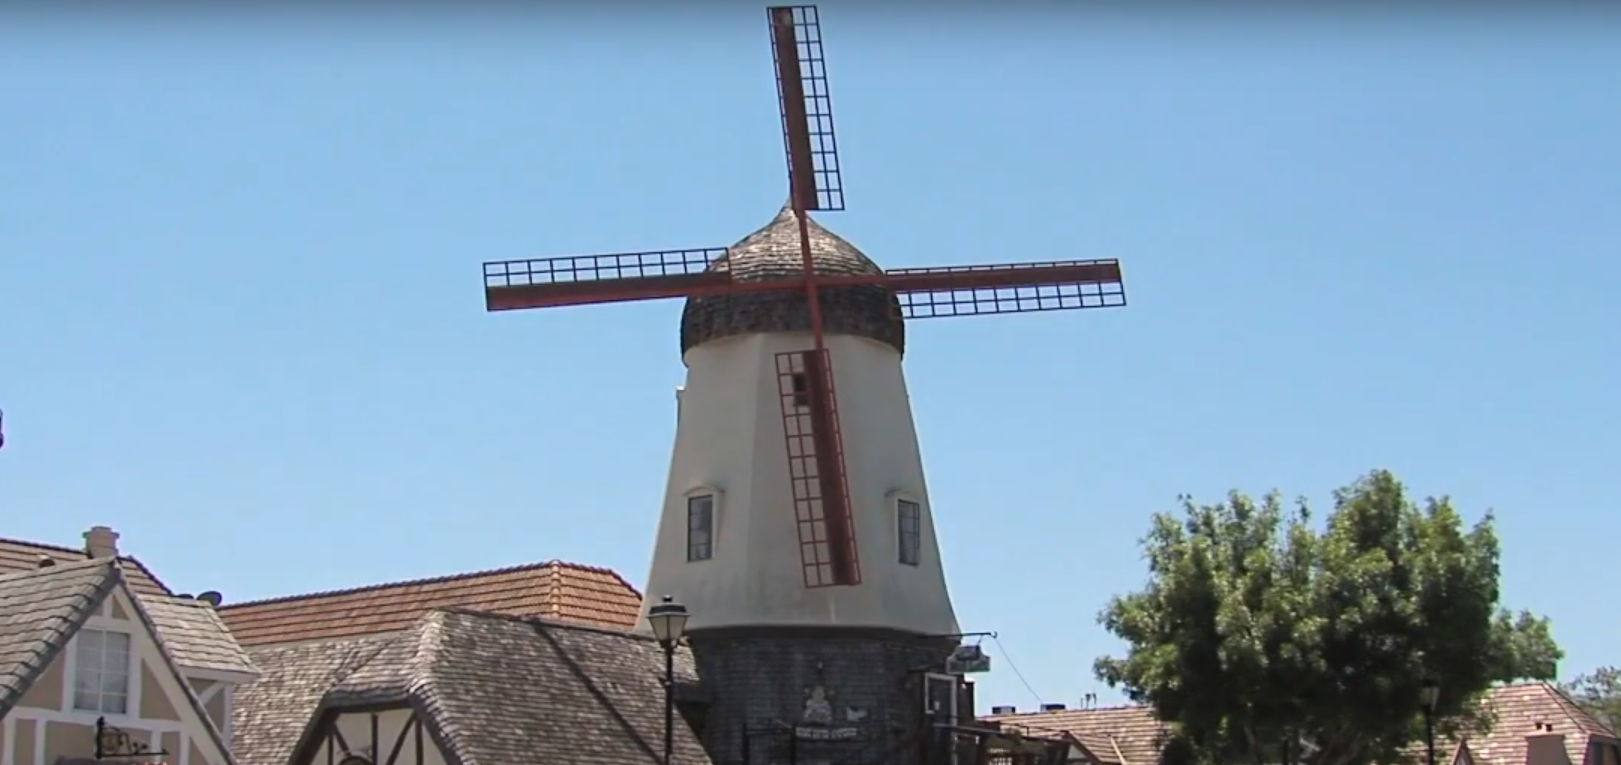 Taste of Denmark in Solvang, CA